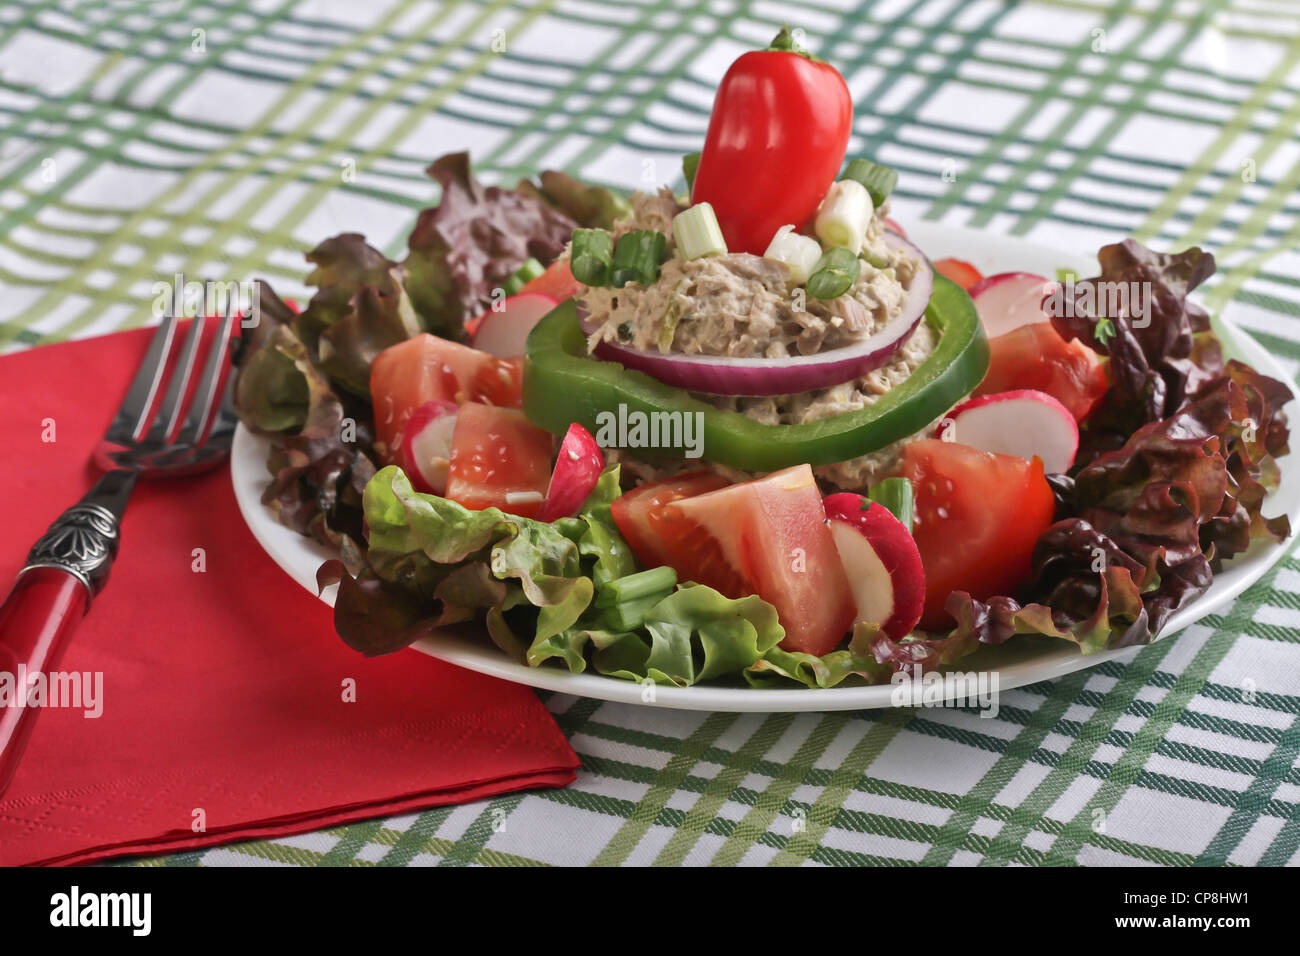 A Tuna Salad Plate With Colorful Garnishes On A Green Striped Tablecloth  With Fork On A Red Napkin